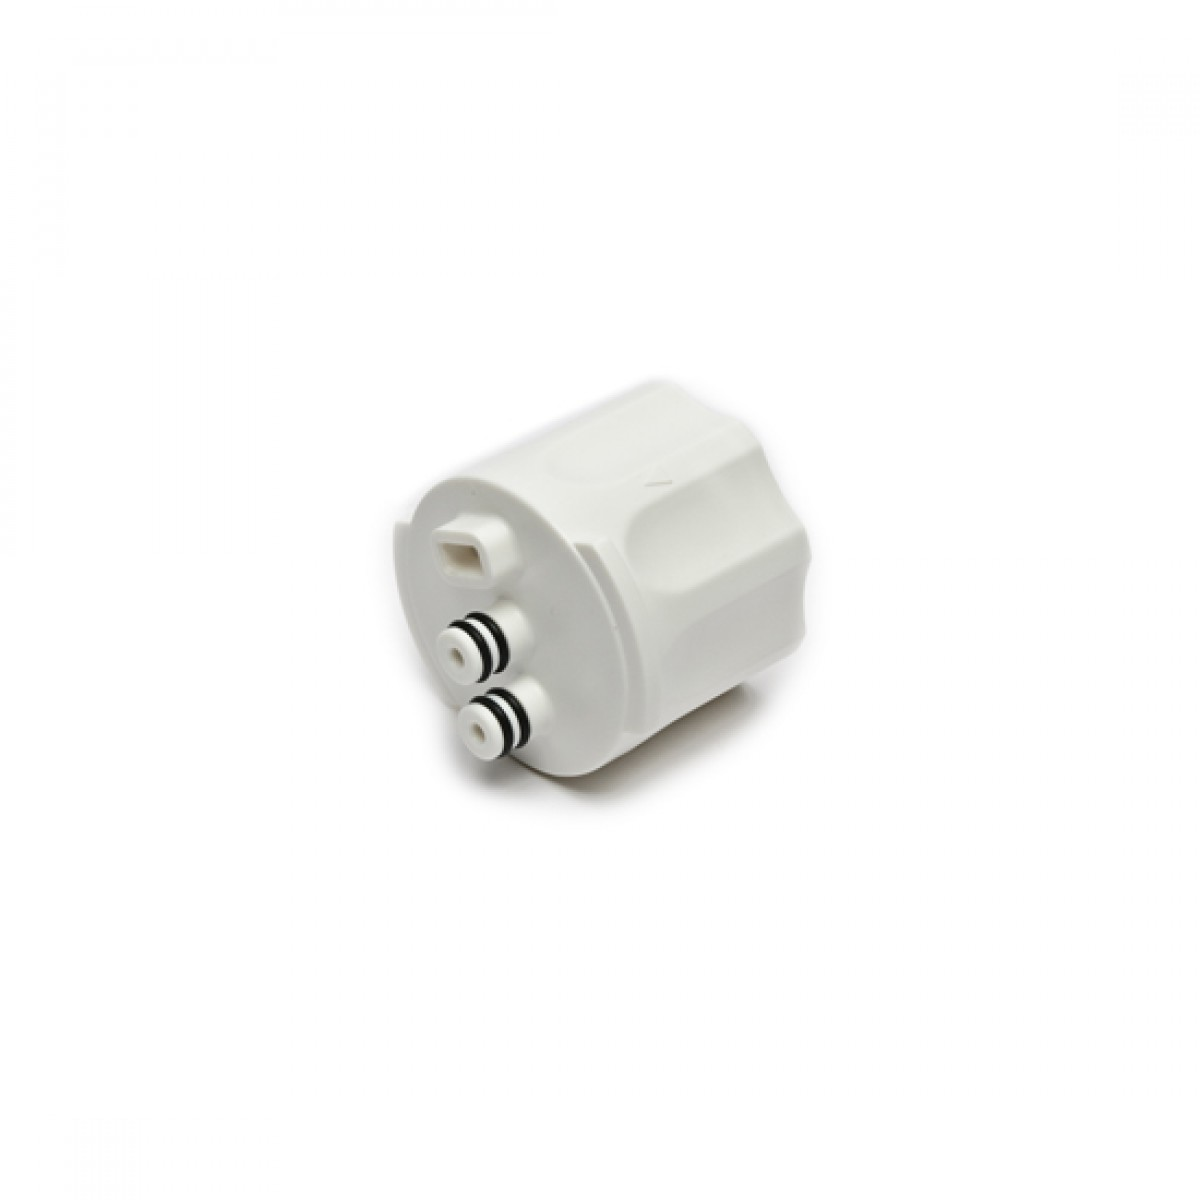 Rv Byp Ez Culligan Rv Bypass Fitting Adapter